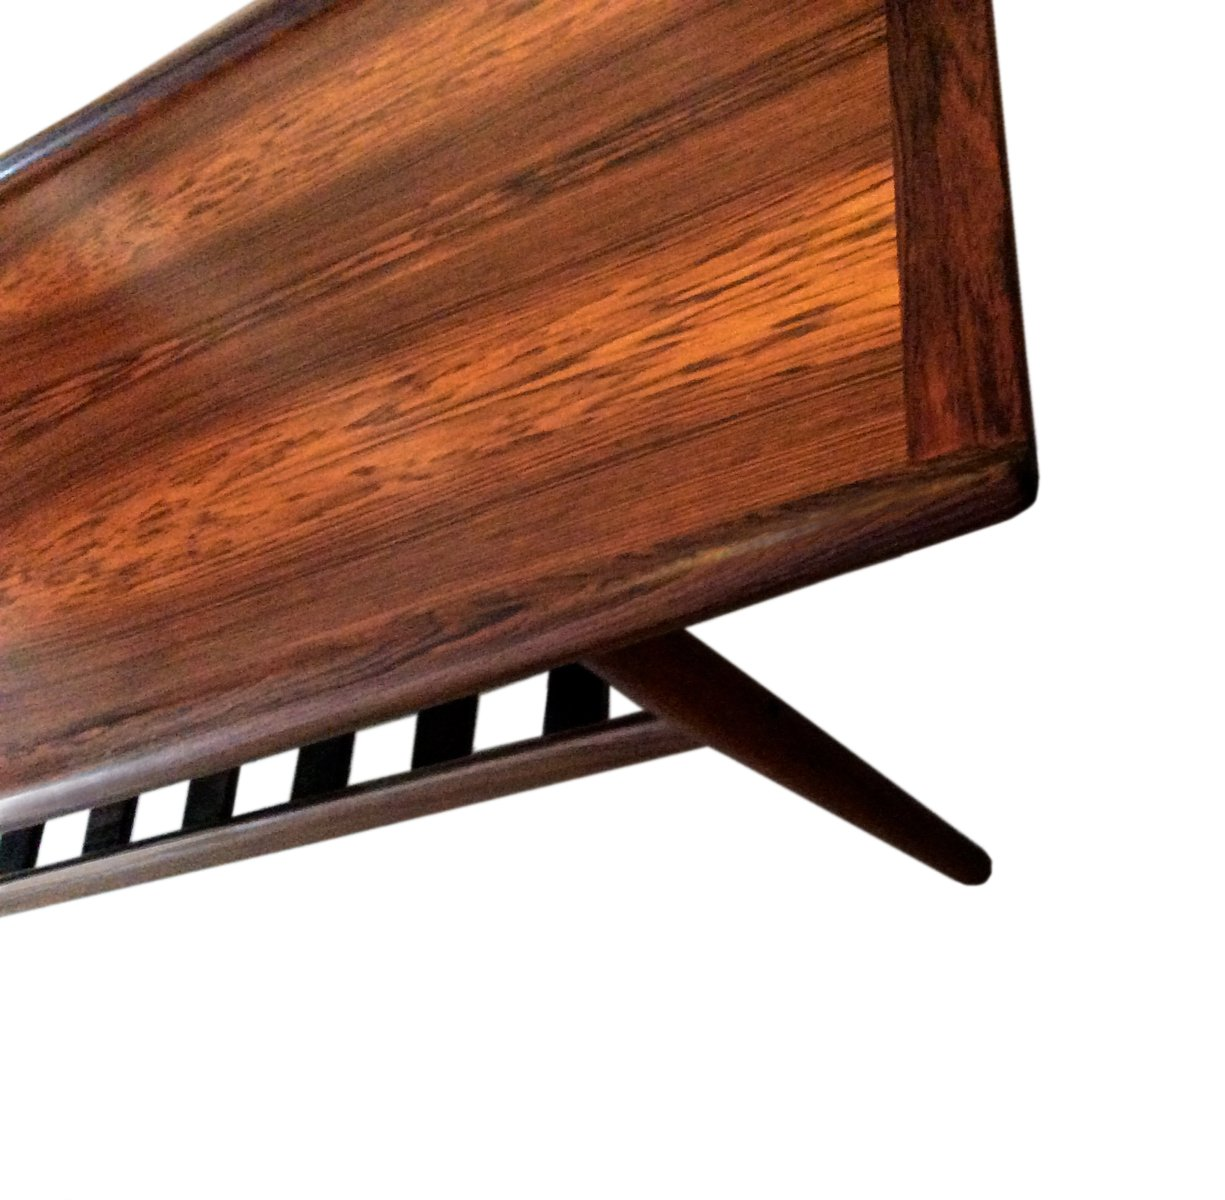 brazilian rosewood club table by grete jalk for glostrup. Black Bedroom Furniture Sets. Home Design Ideas